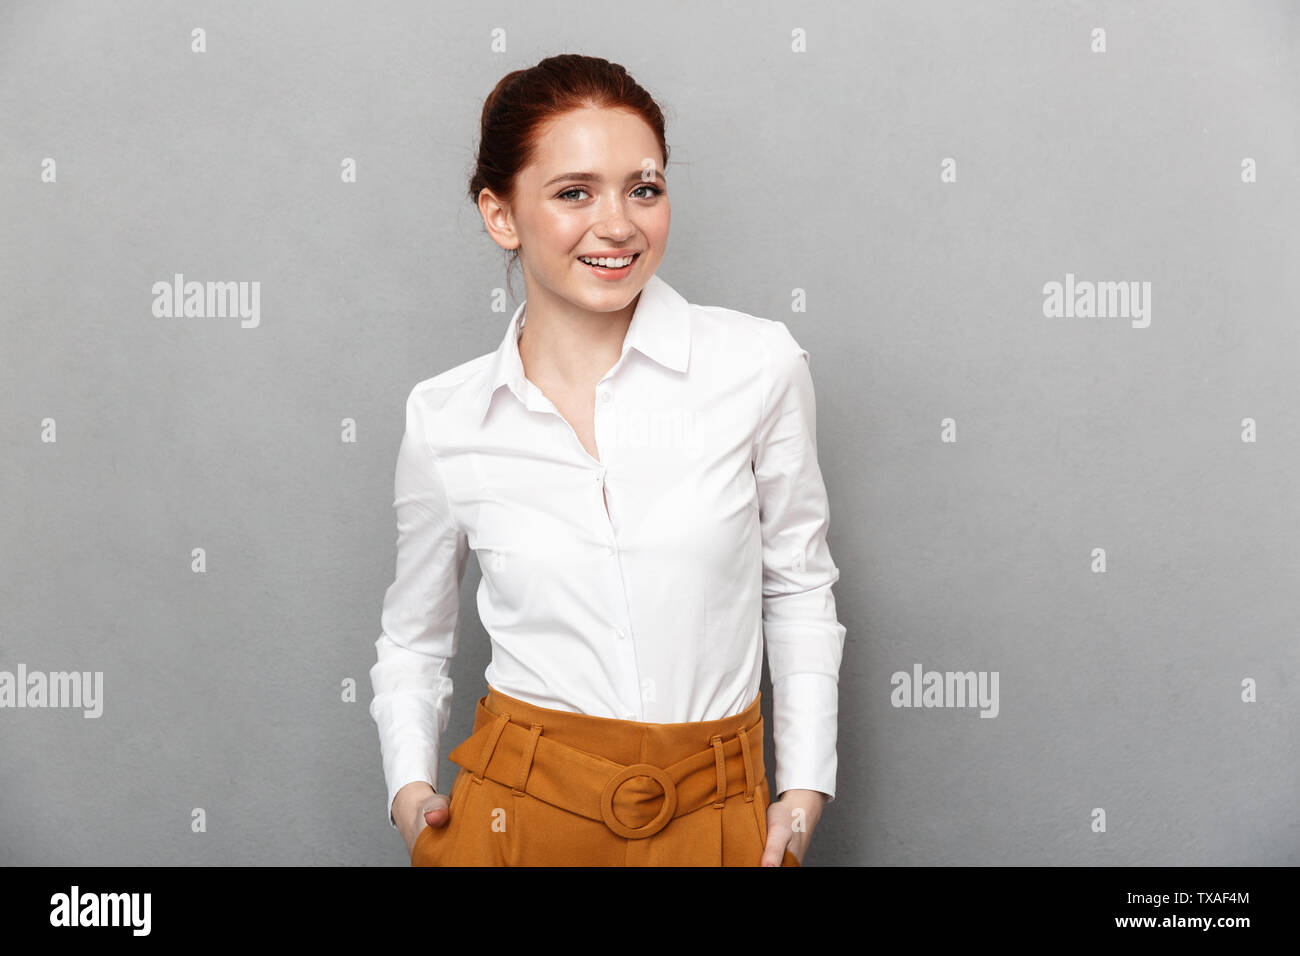 Portrait of cheerful redhead businesswoman 20s in formal wear smiling at camera and posing in office isolated over gray background - Stock Image